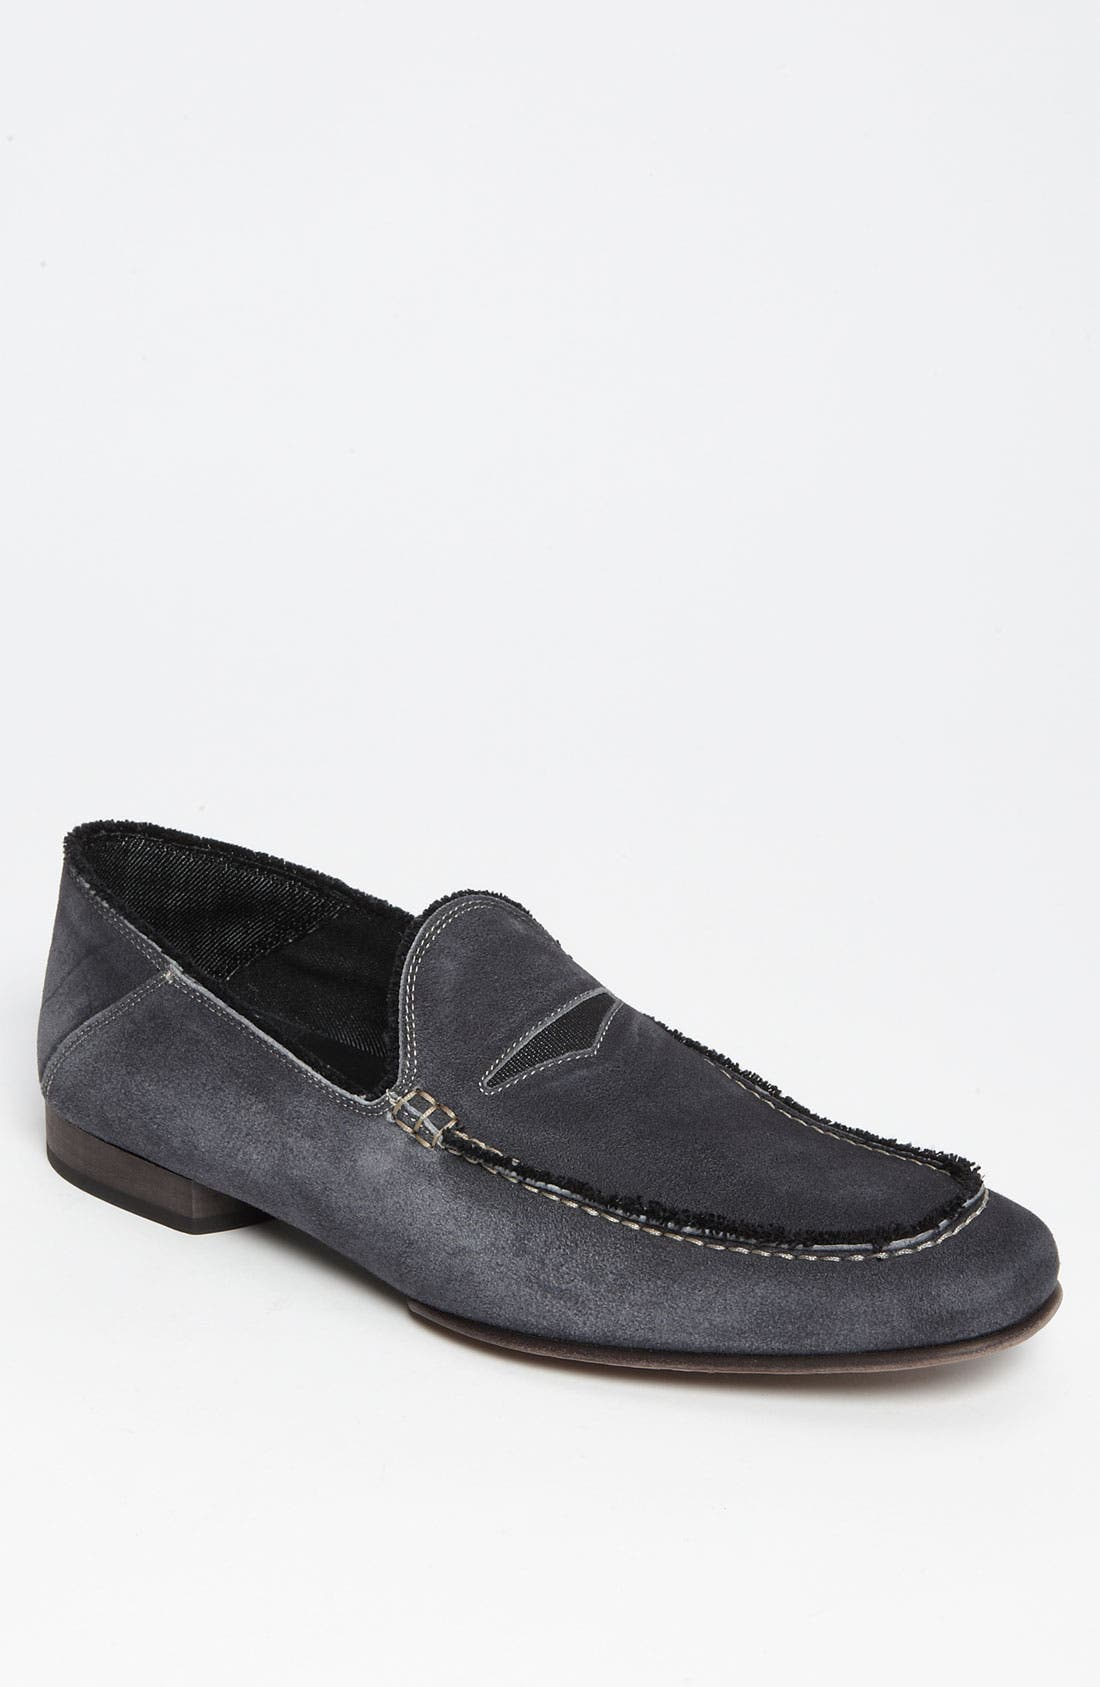 Alternate Image 1 Selected - Donald J Pliner 'Vian' Loafer